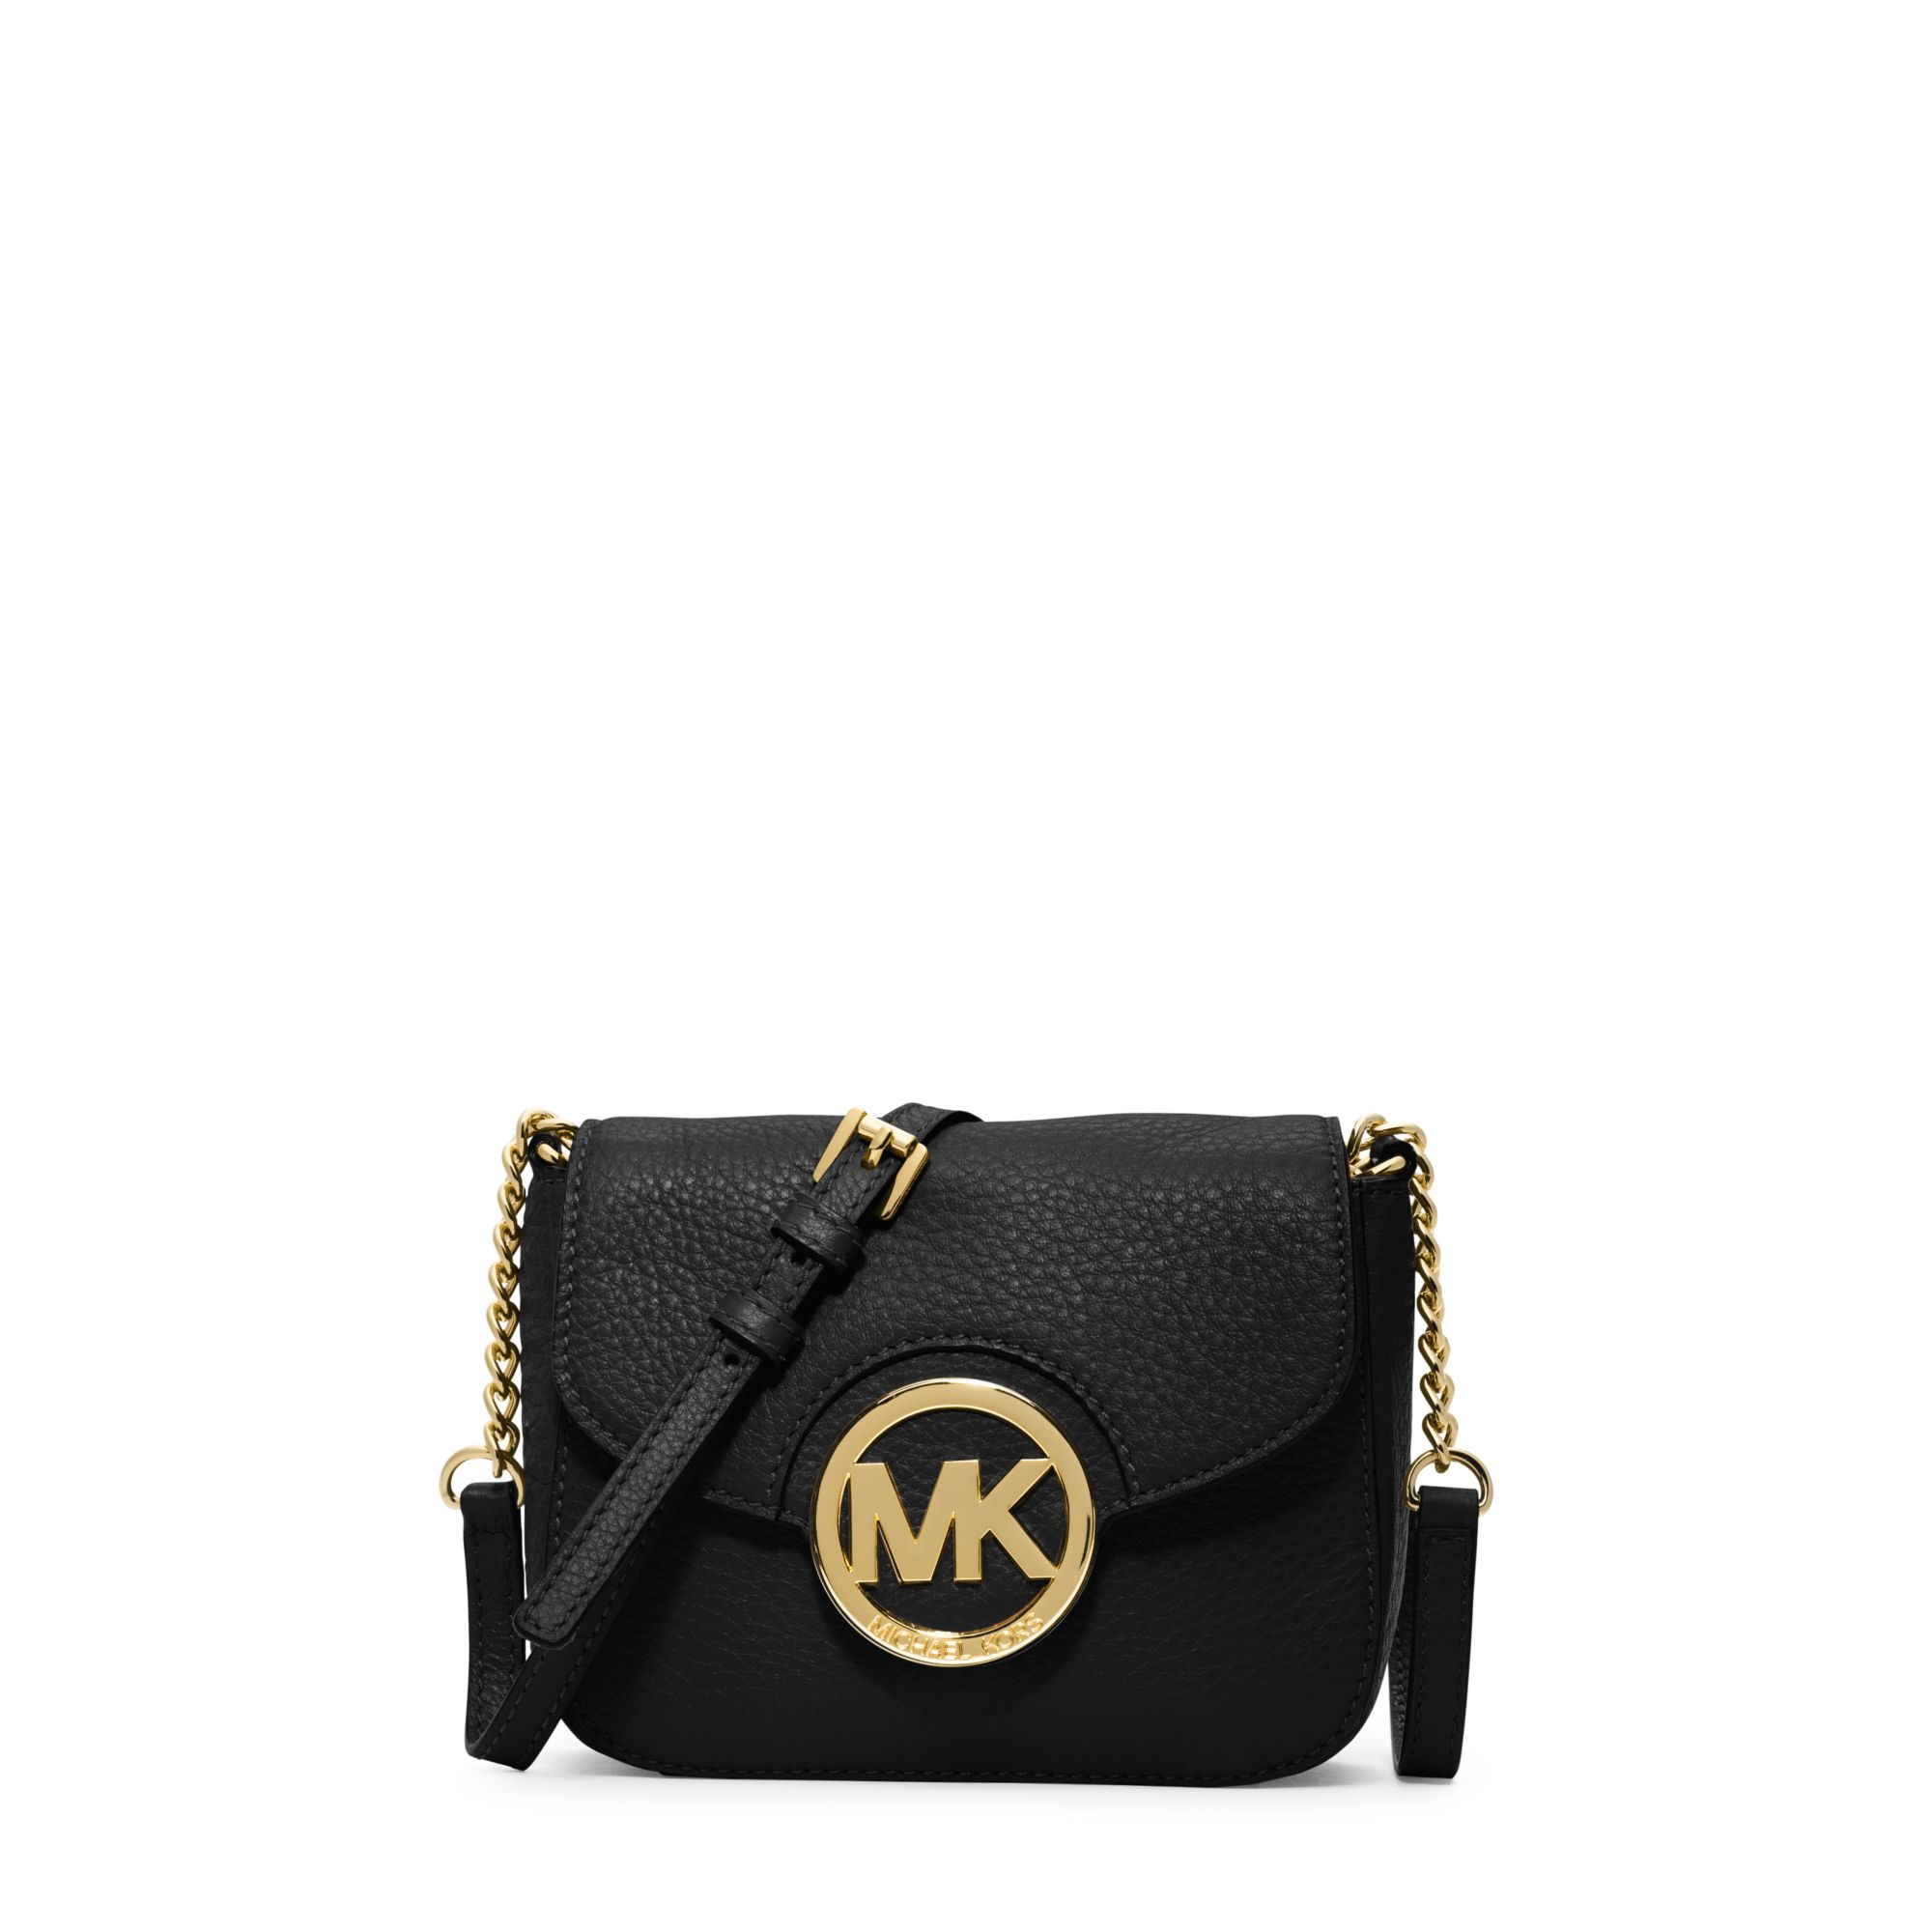 michael kors fulton leather small crossbody in black lyst. Black Bedroom Furniture Sets. Home Design Ideas